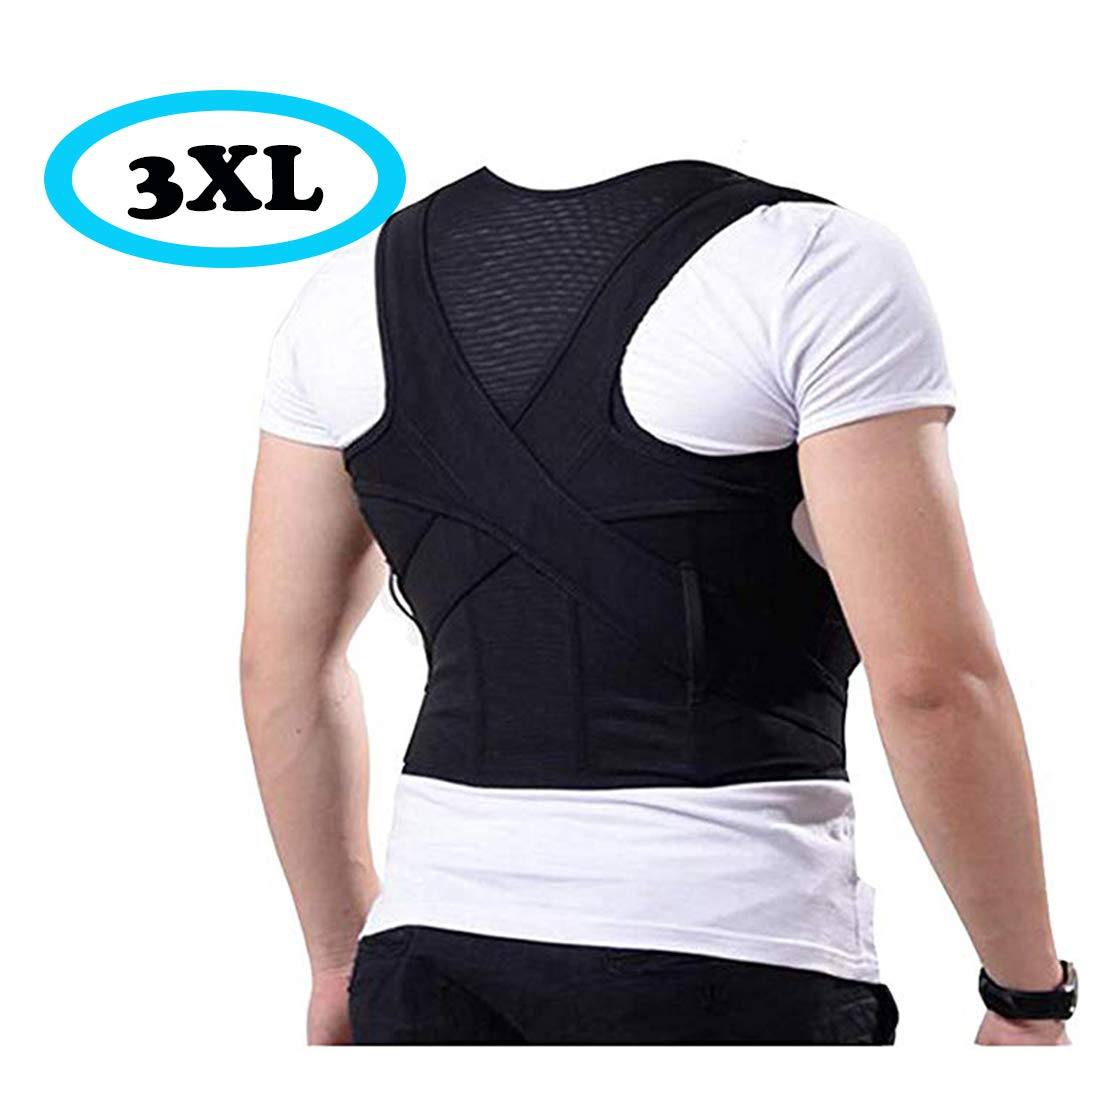 Improved Size Straight Back Posture Support,Correct Sitting Posture,Upright Humpback Posture,Breathable Back Brace and Comfort Back Support.(3XL) by GXBTOP